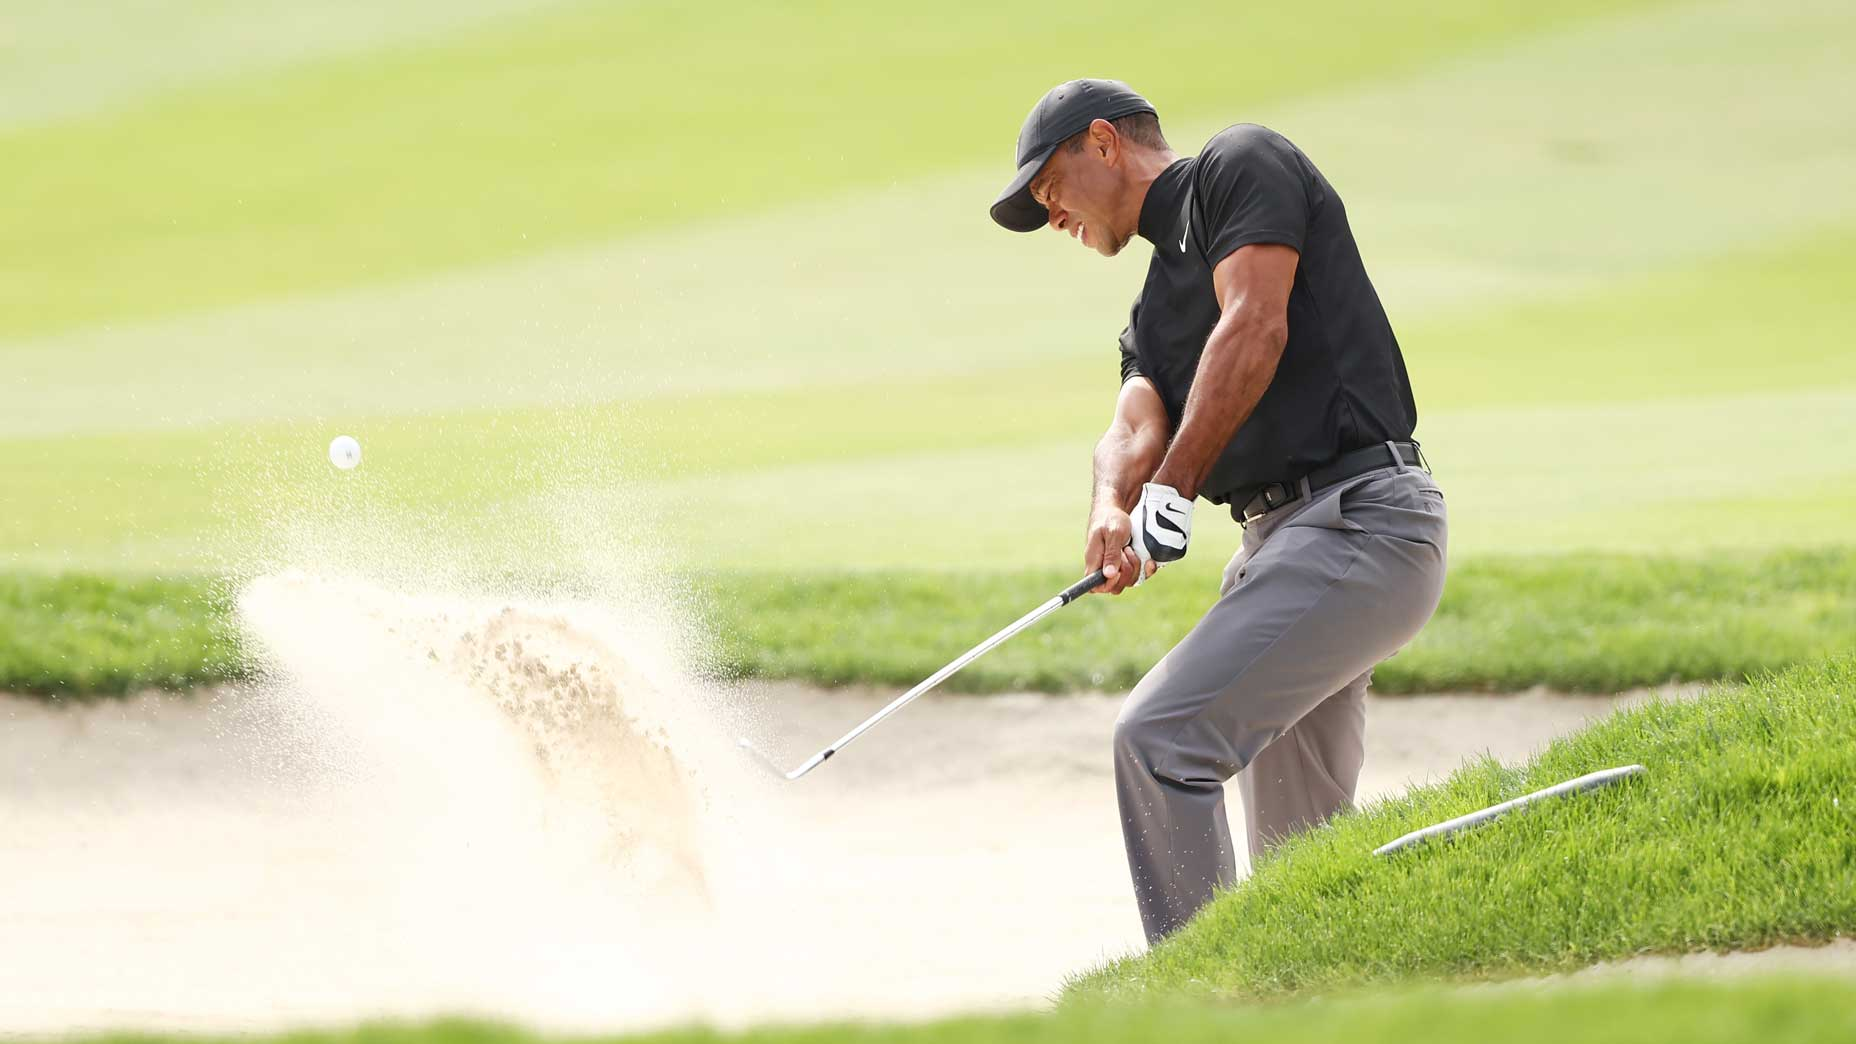 Tiger Woods hits sand shot at 2020 Zozo Championship